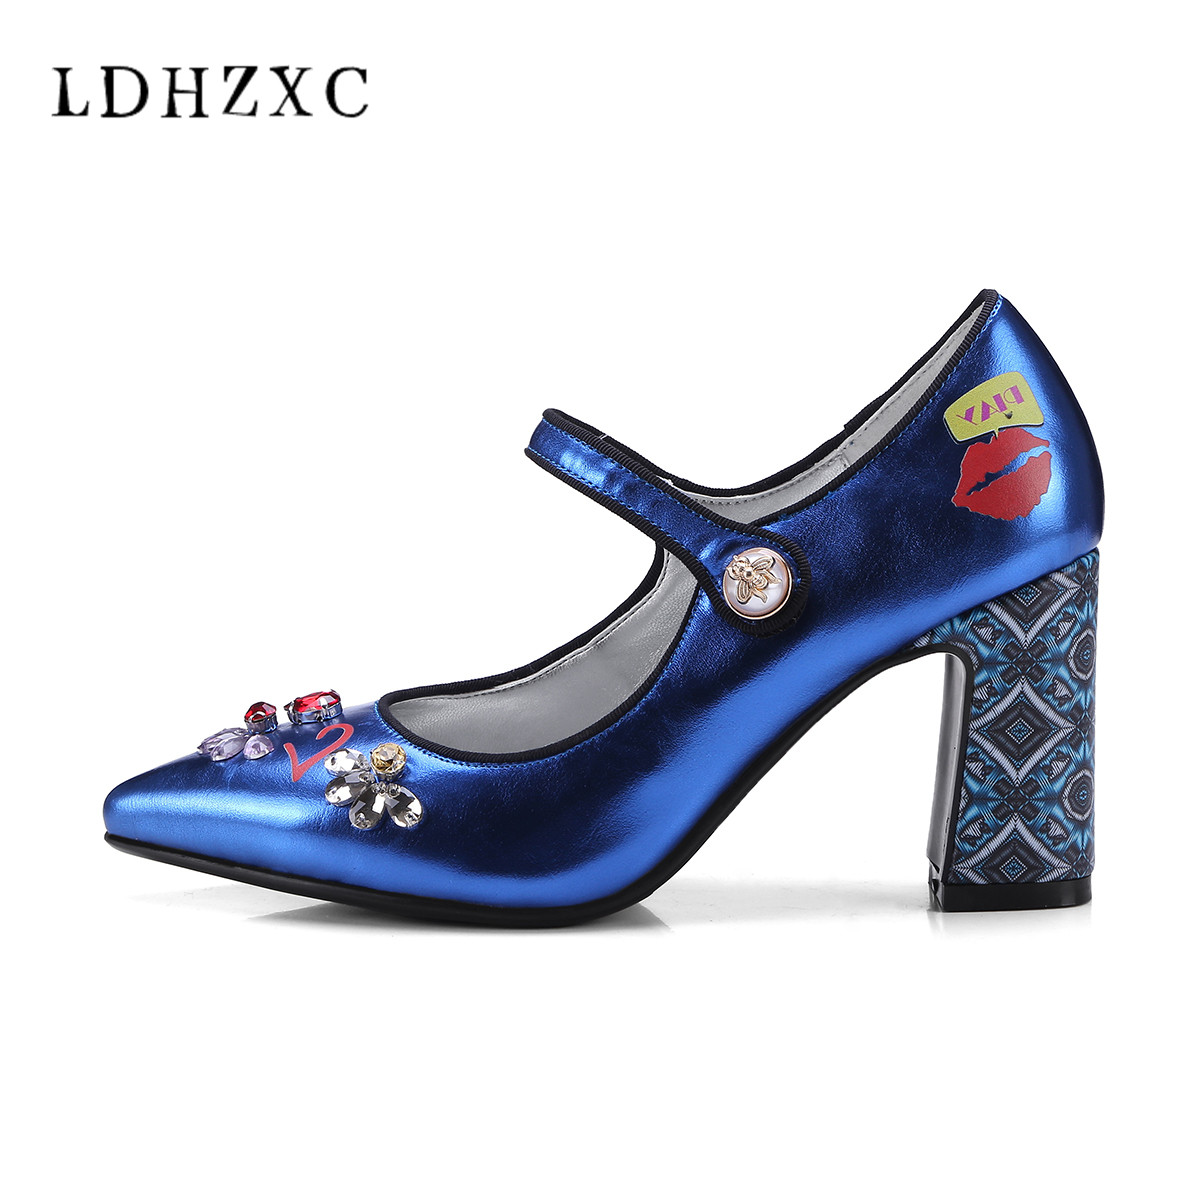 LDHZXC Women Mary Janes Pumps Sexy Pointed Toe Gladiator High Heels Shoes Woman Blue Genuine Leather Stilettos Shoes Woman Pumps xiuningyan gladiator high heels women pumps stiletto sandal booties pointed toe crystal zipper suede sexy pumps shoes woman boot